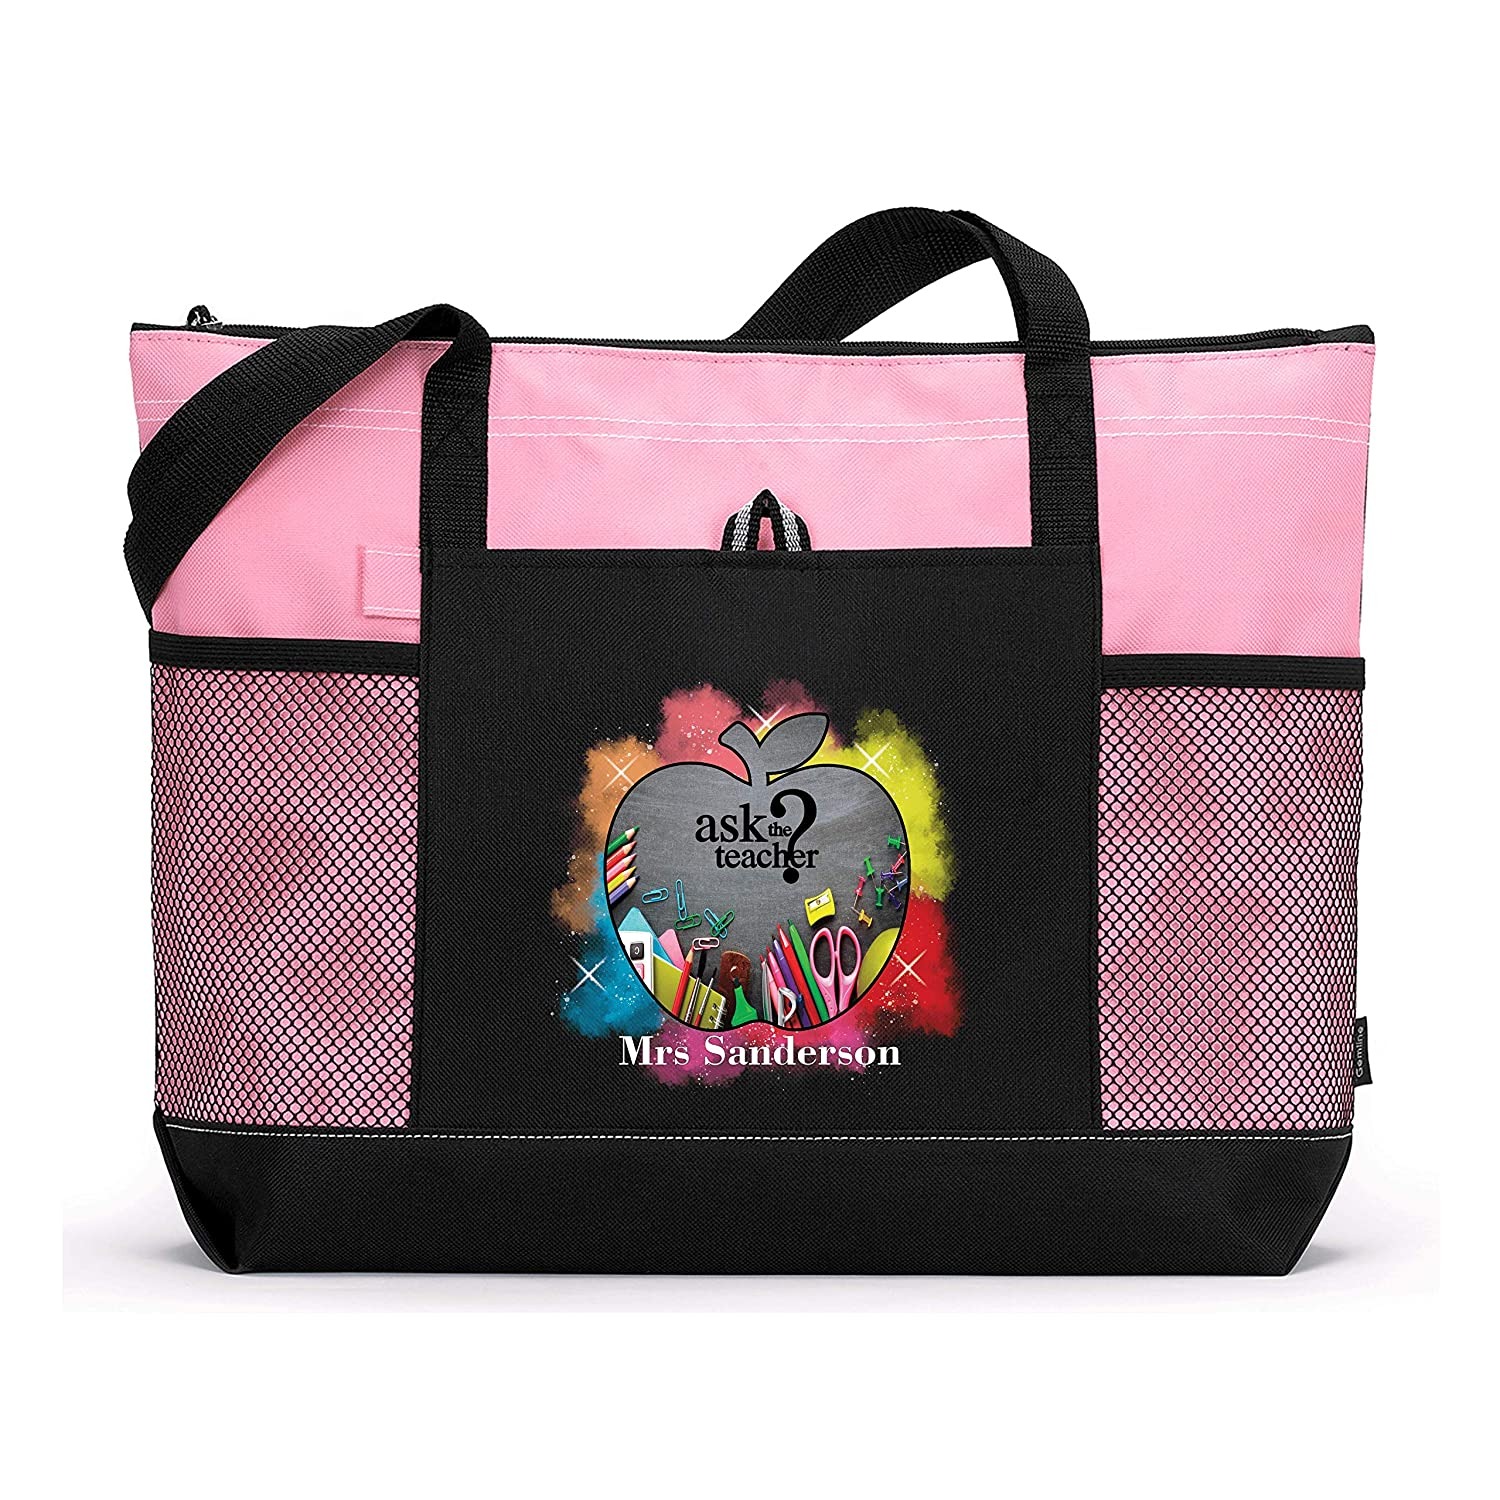 Ask the Teacher Personalized Printed Tote Bag with Mesh Pockets